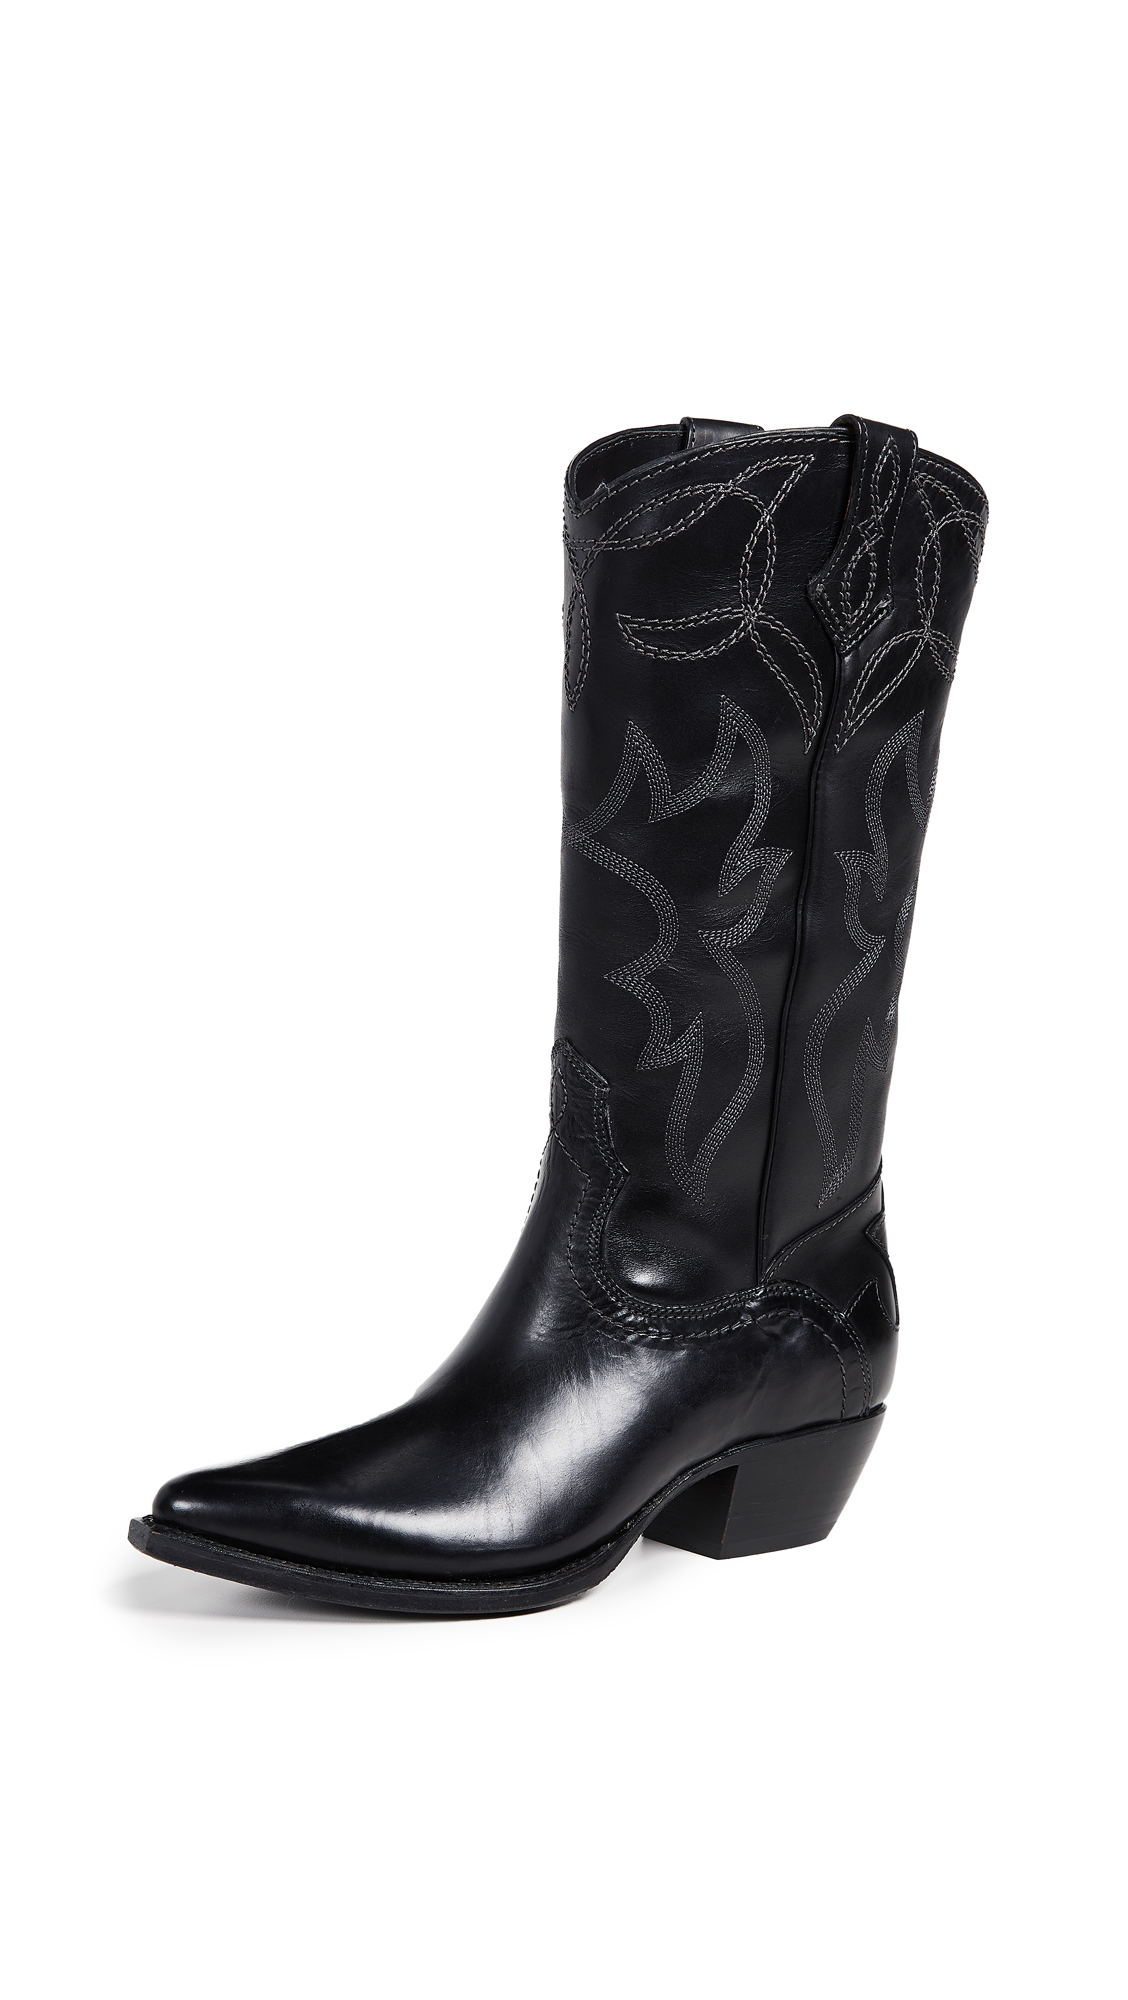 Frye Shane Embroidered Boots - Black